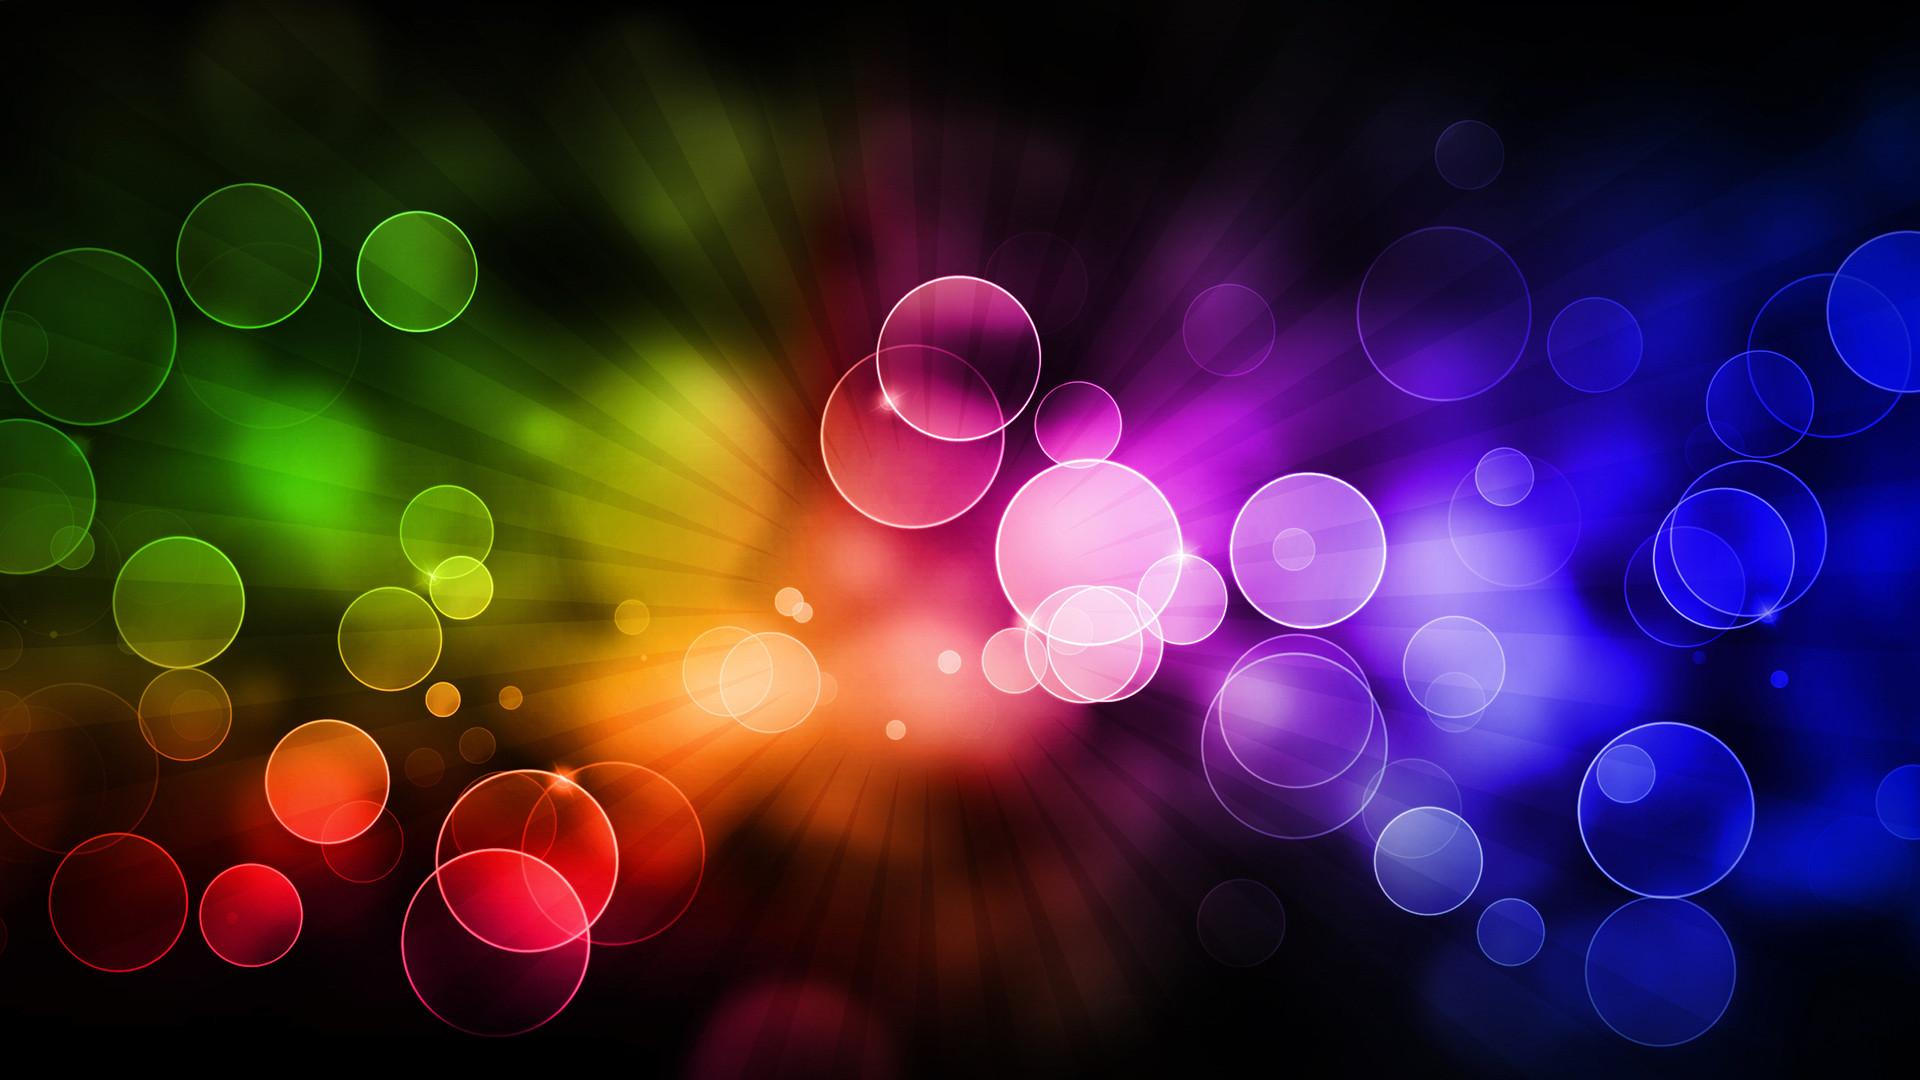 Cool Backgrounds with amazing colors 1920x1080